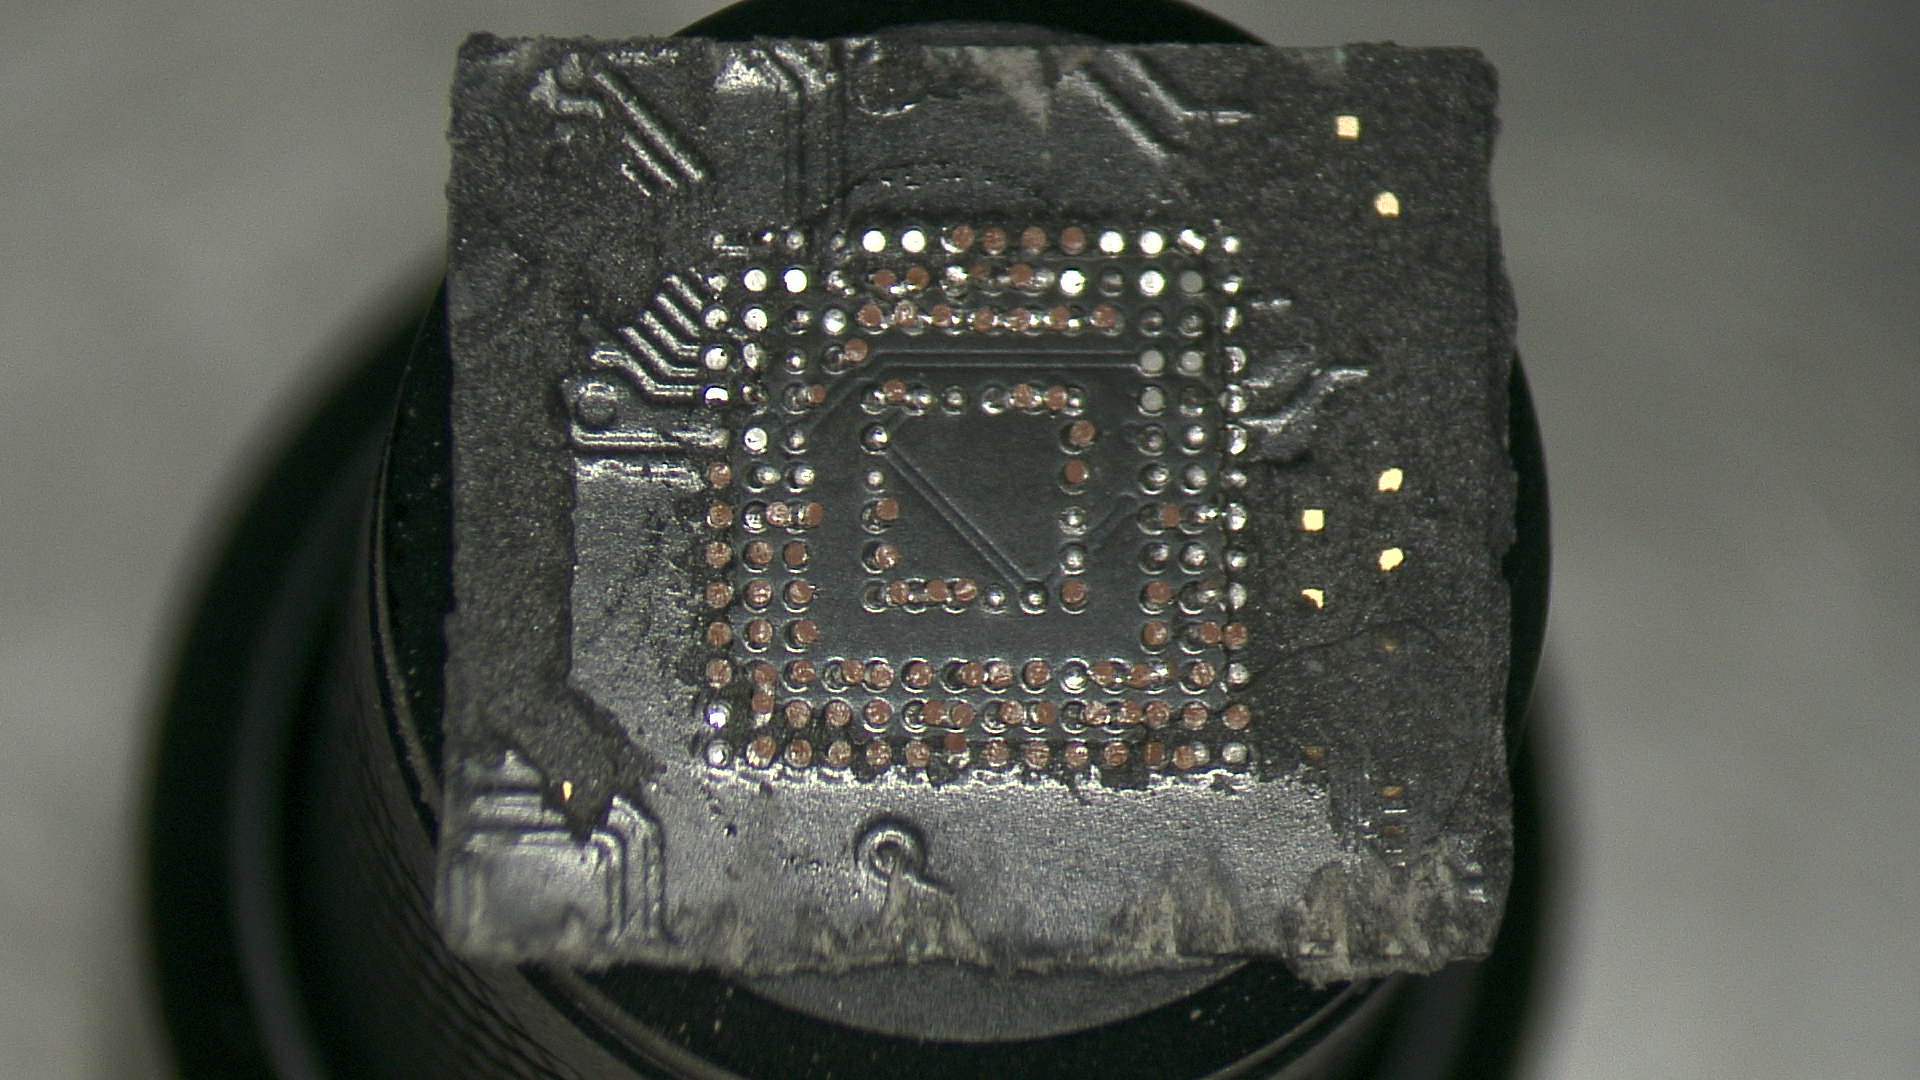 Desoldered BGA chip that need to be cleaned then reballed